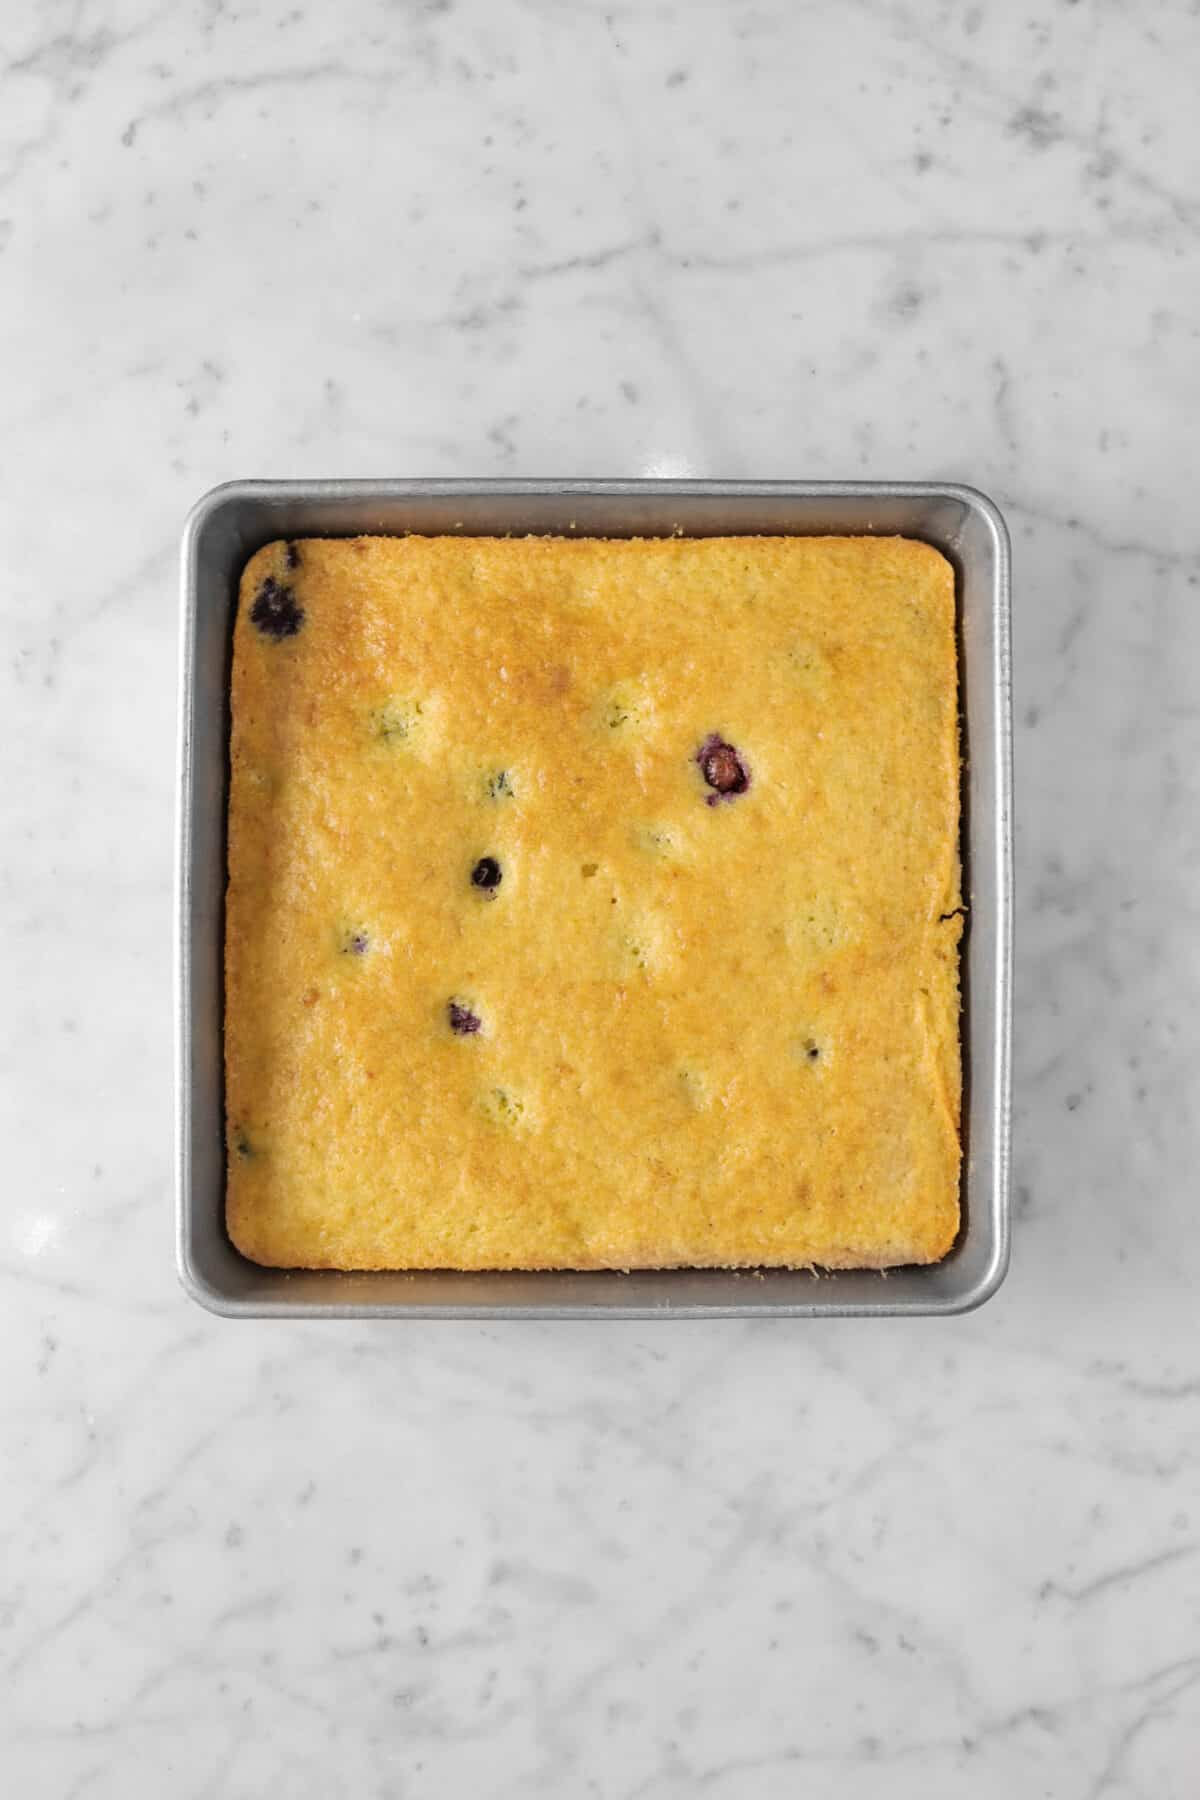 snack cake baked in a square pan